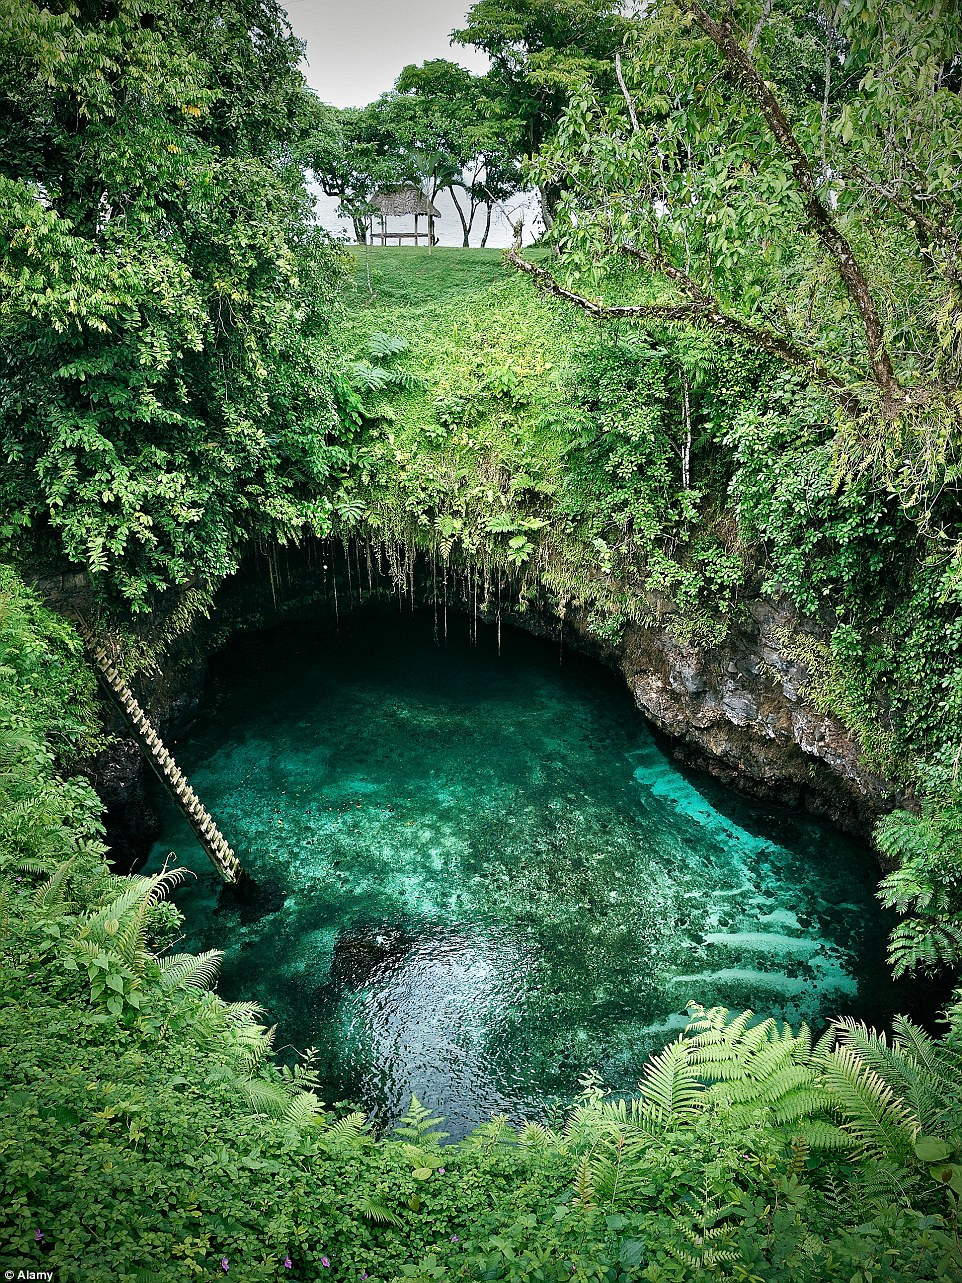 The pool is maintained by water flowing in from the South Pacific Ocean through a number of channels and tunnels